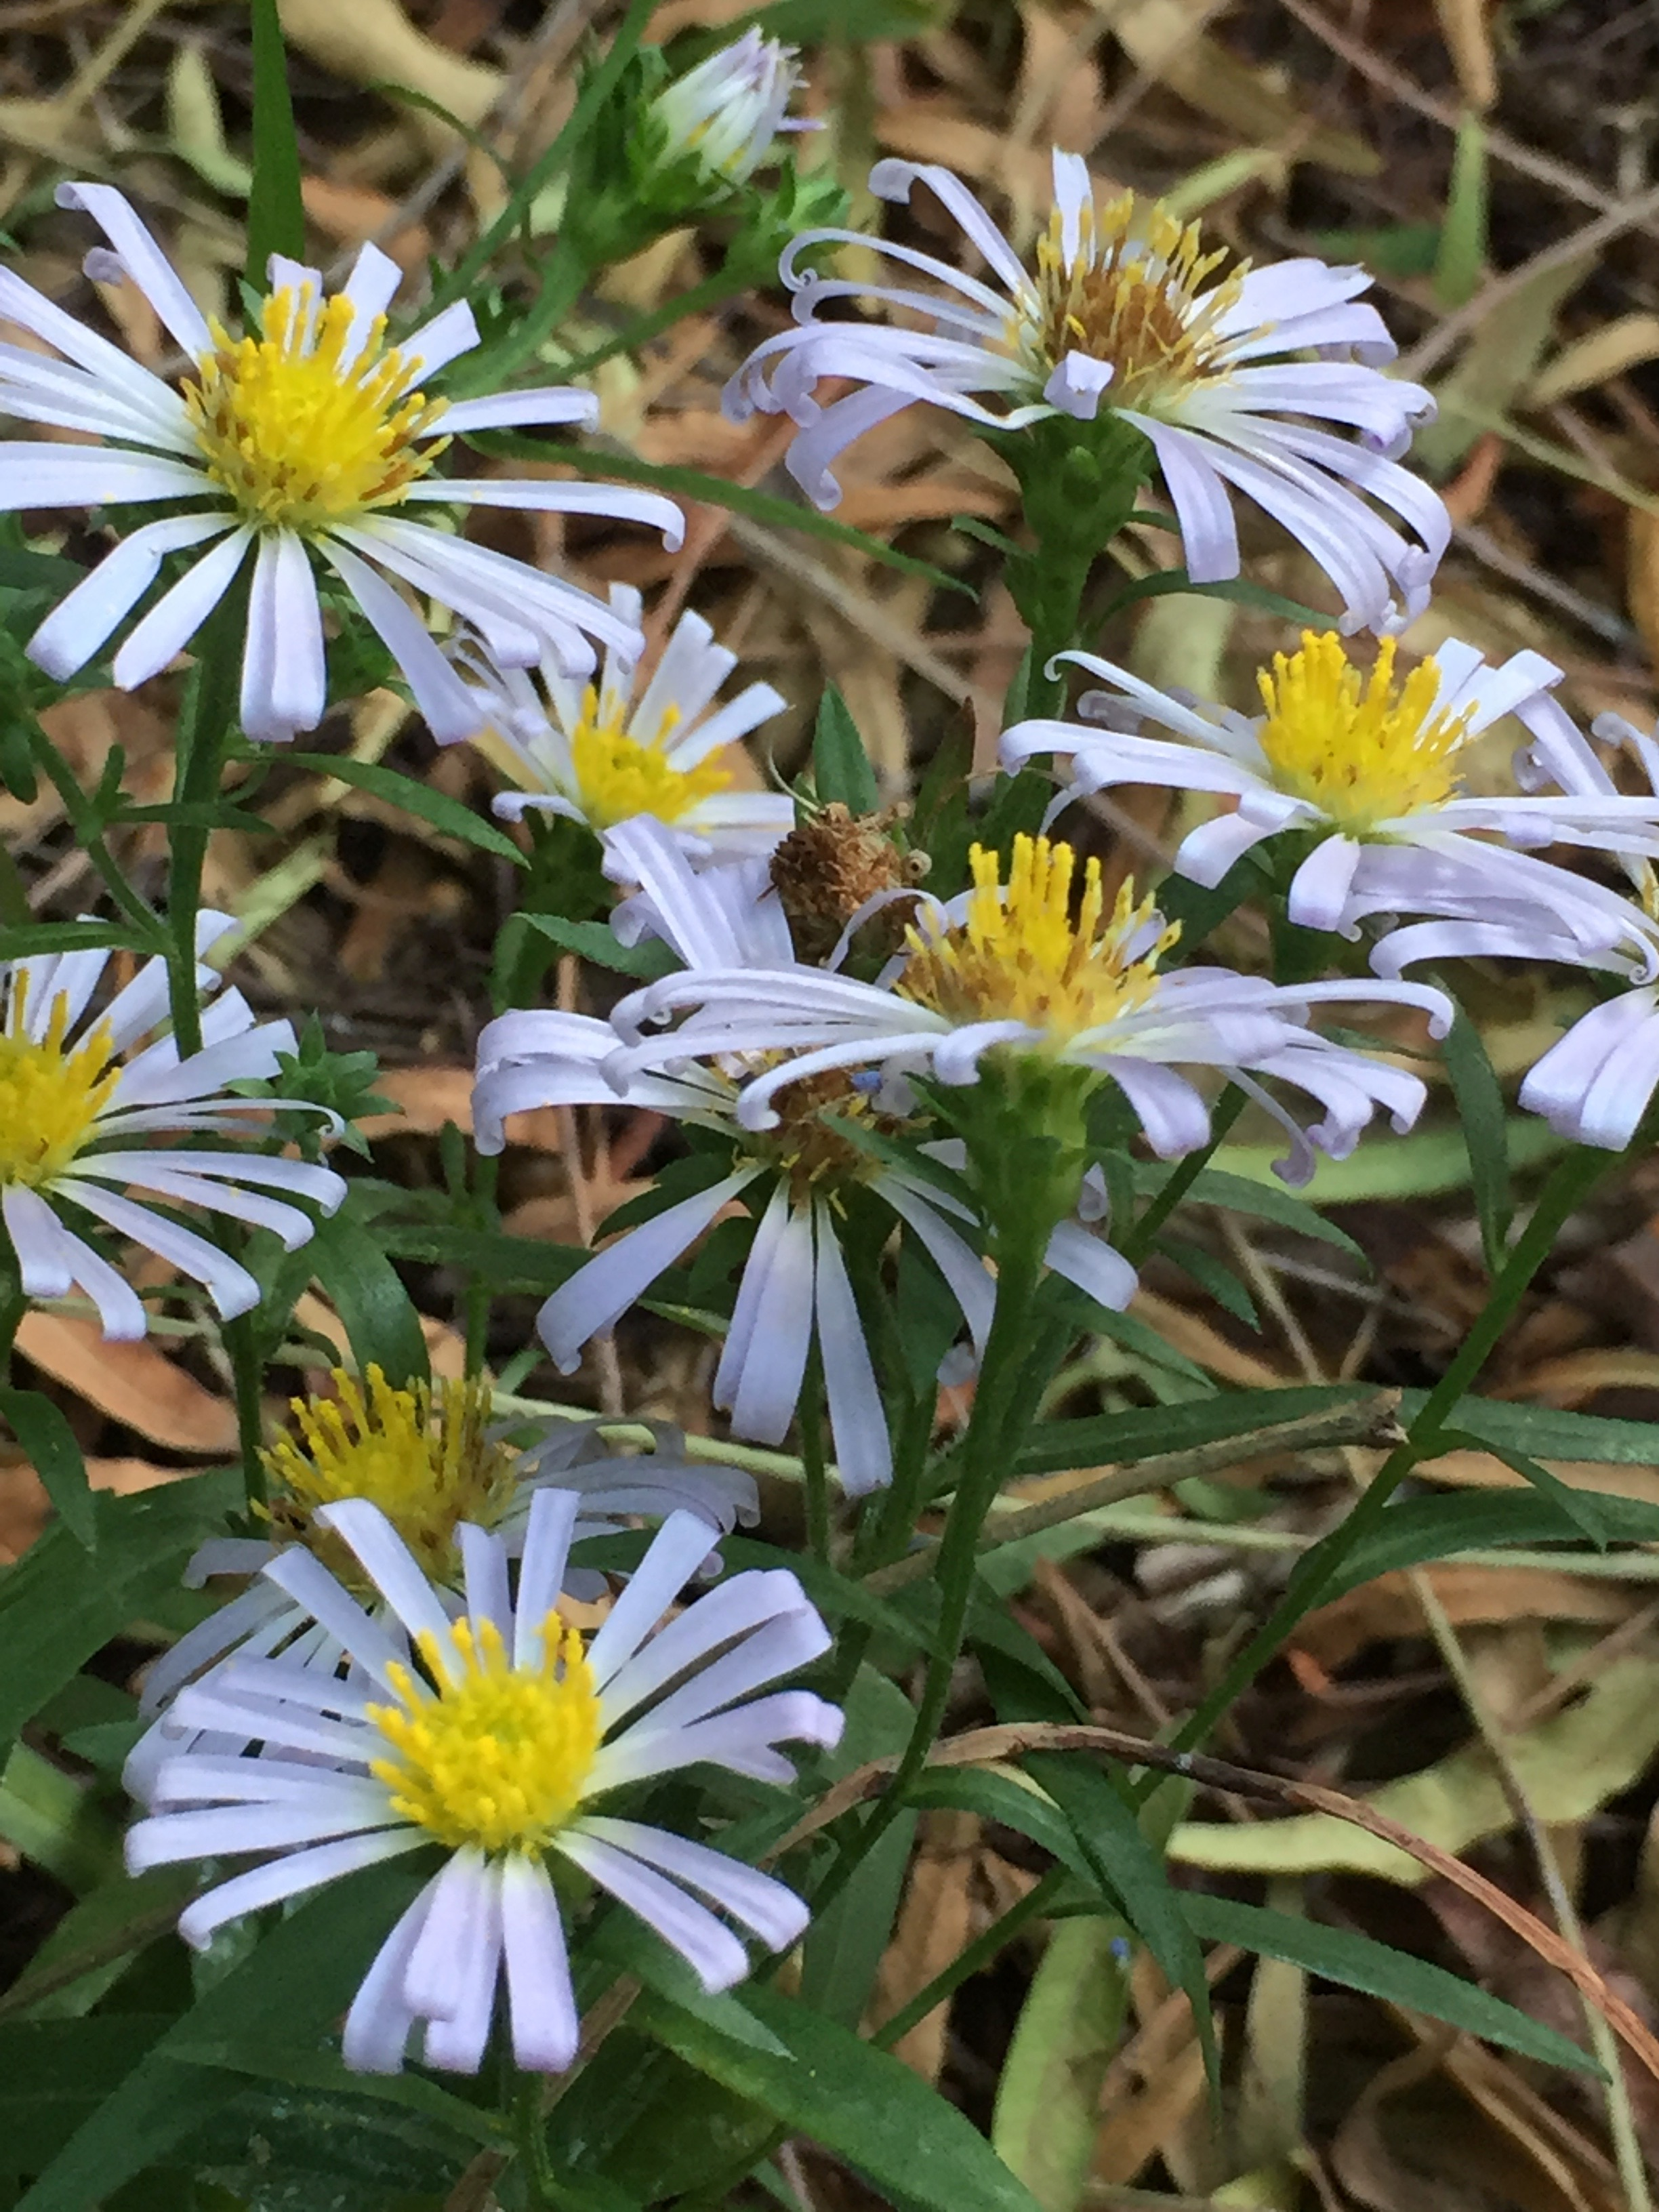 Aster chilensis, or California Aster